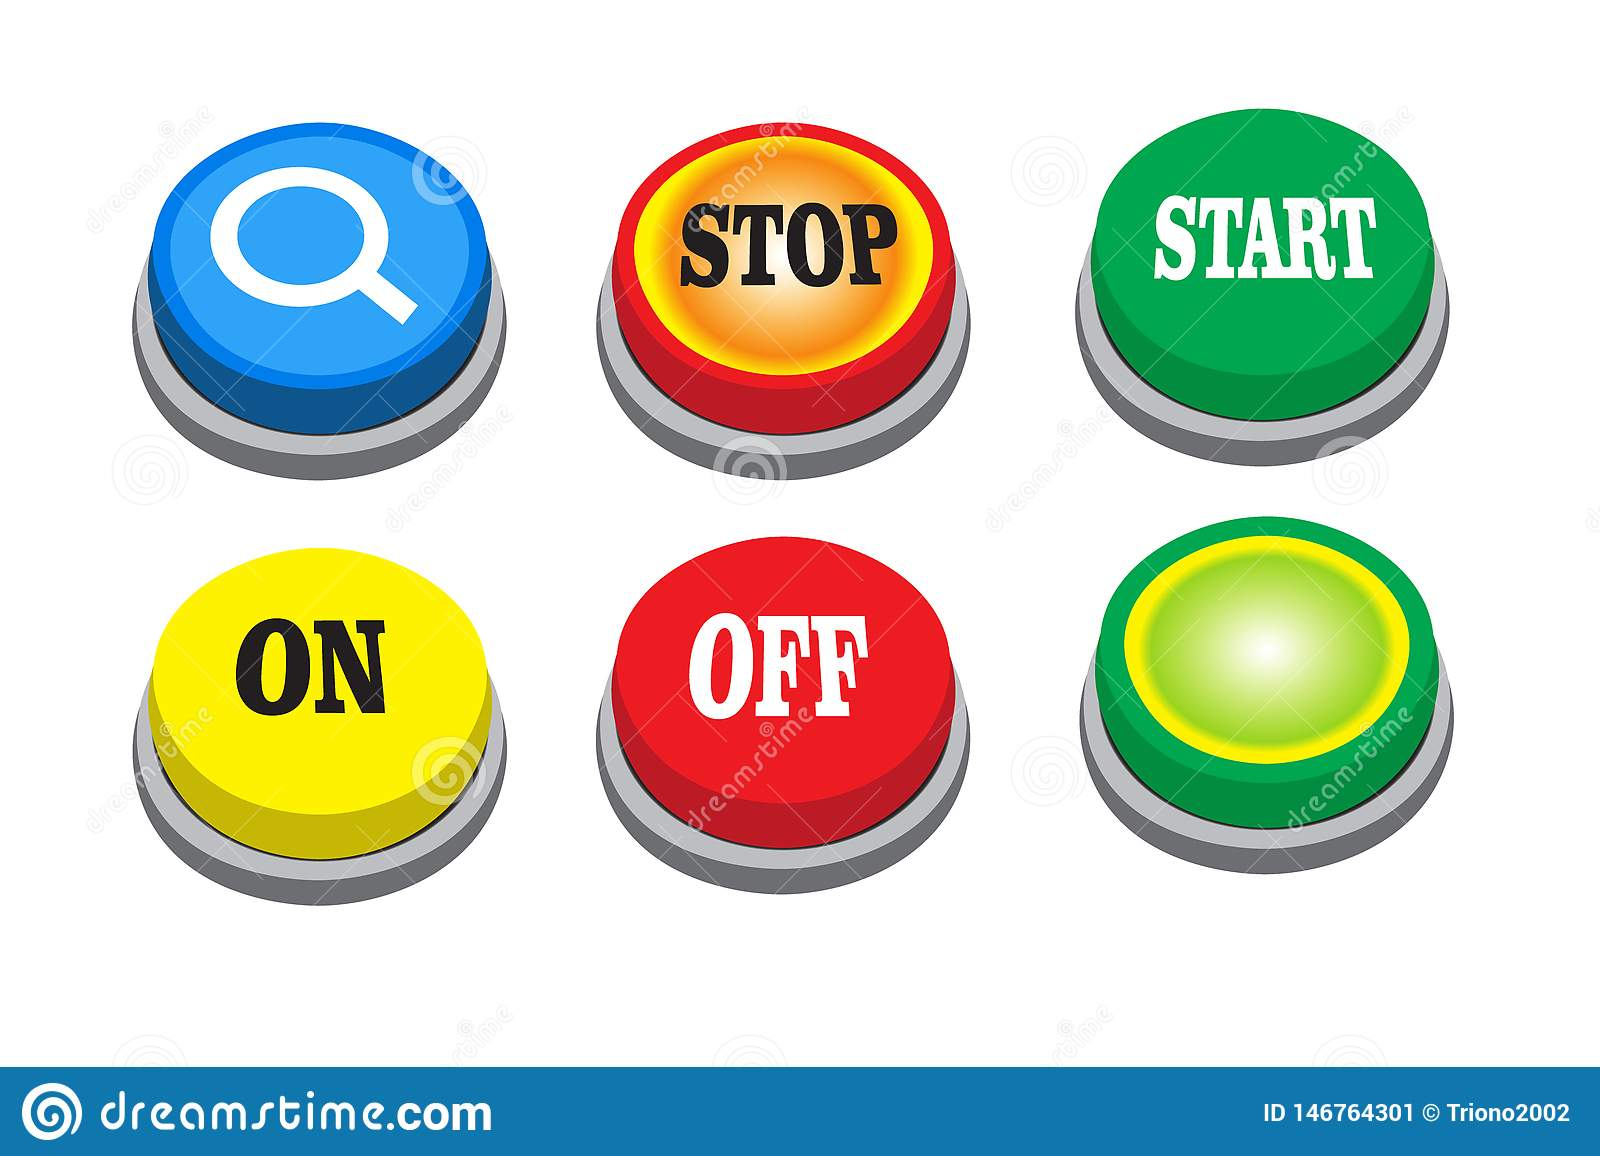 Vector search button, stop, start, on, off and green button